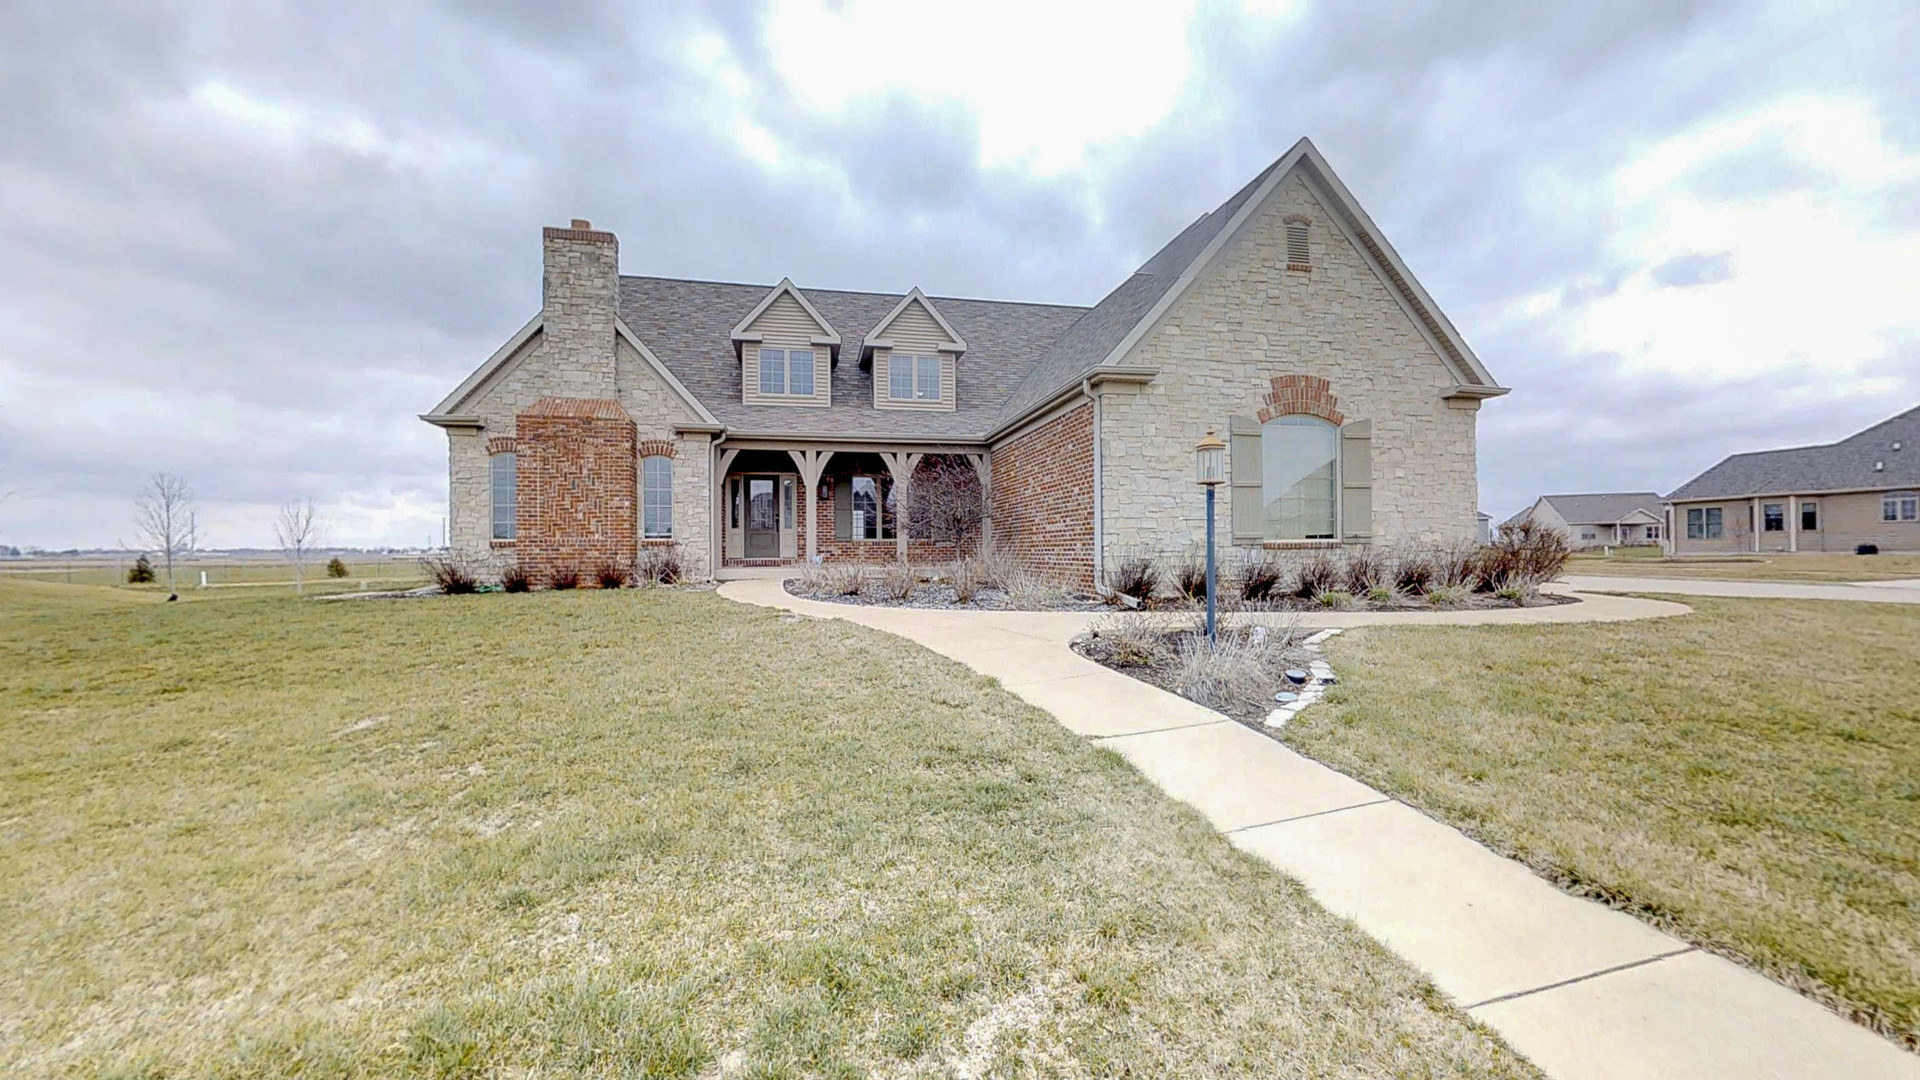 1301 English Oak Drive, Champaign in Champaign County, IL 61822 Home for Sale